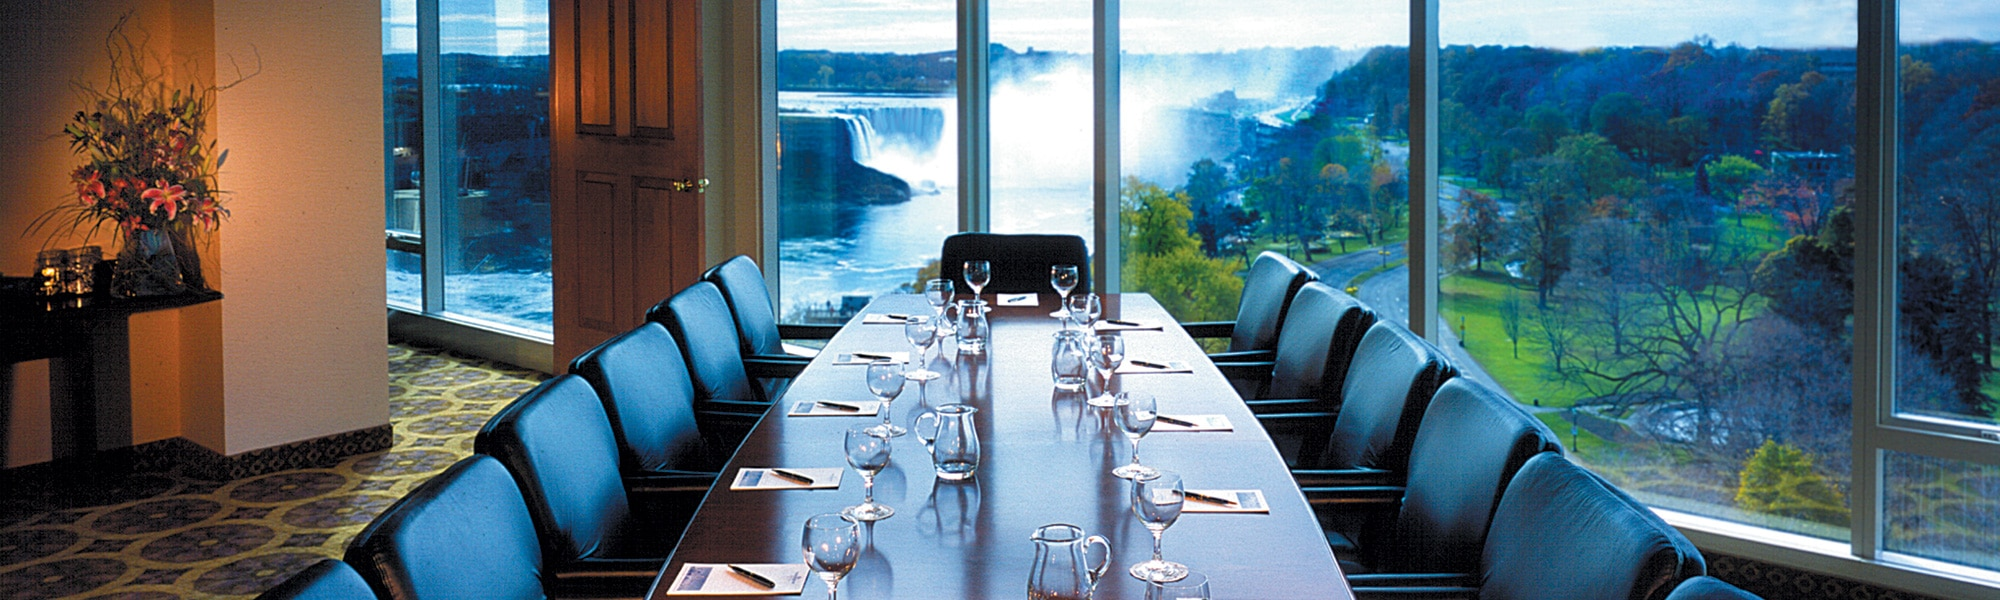 Niagara Falls Meetings